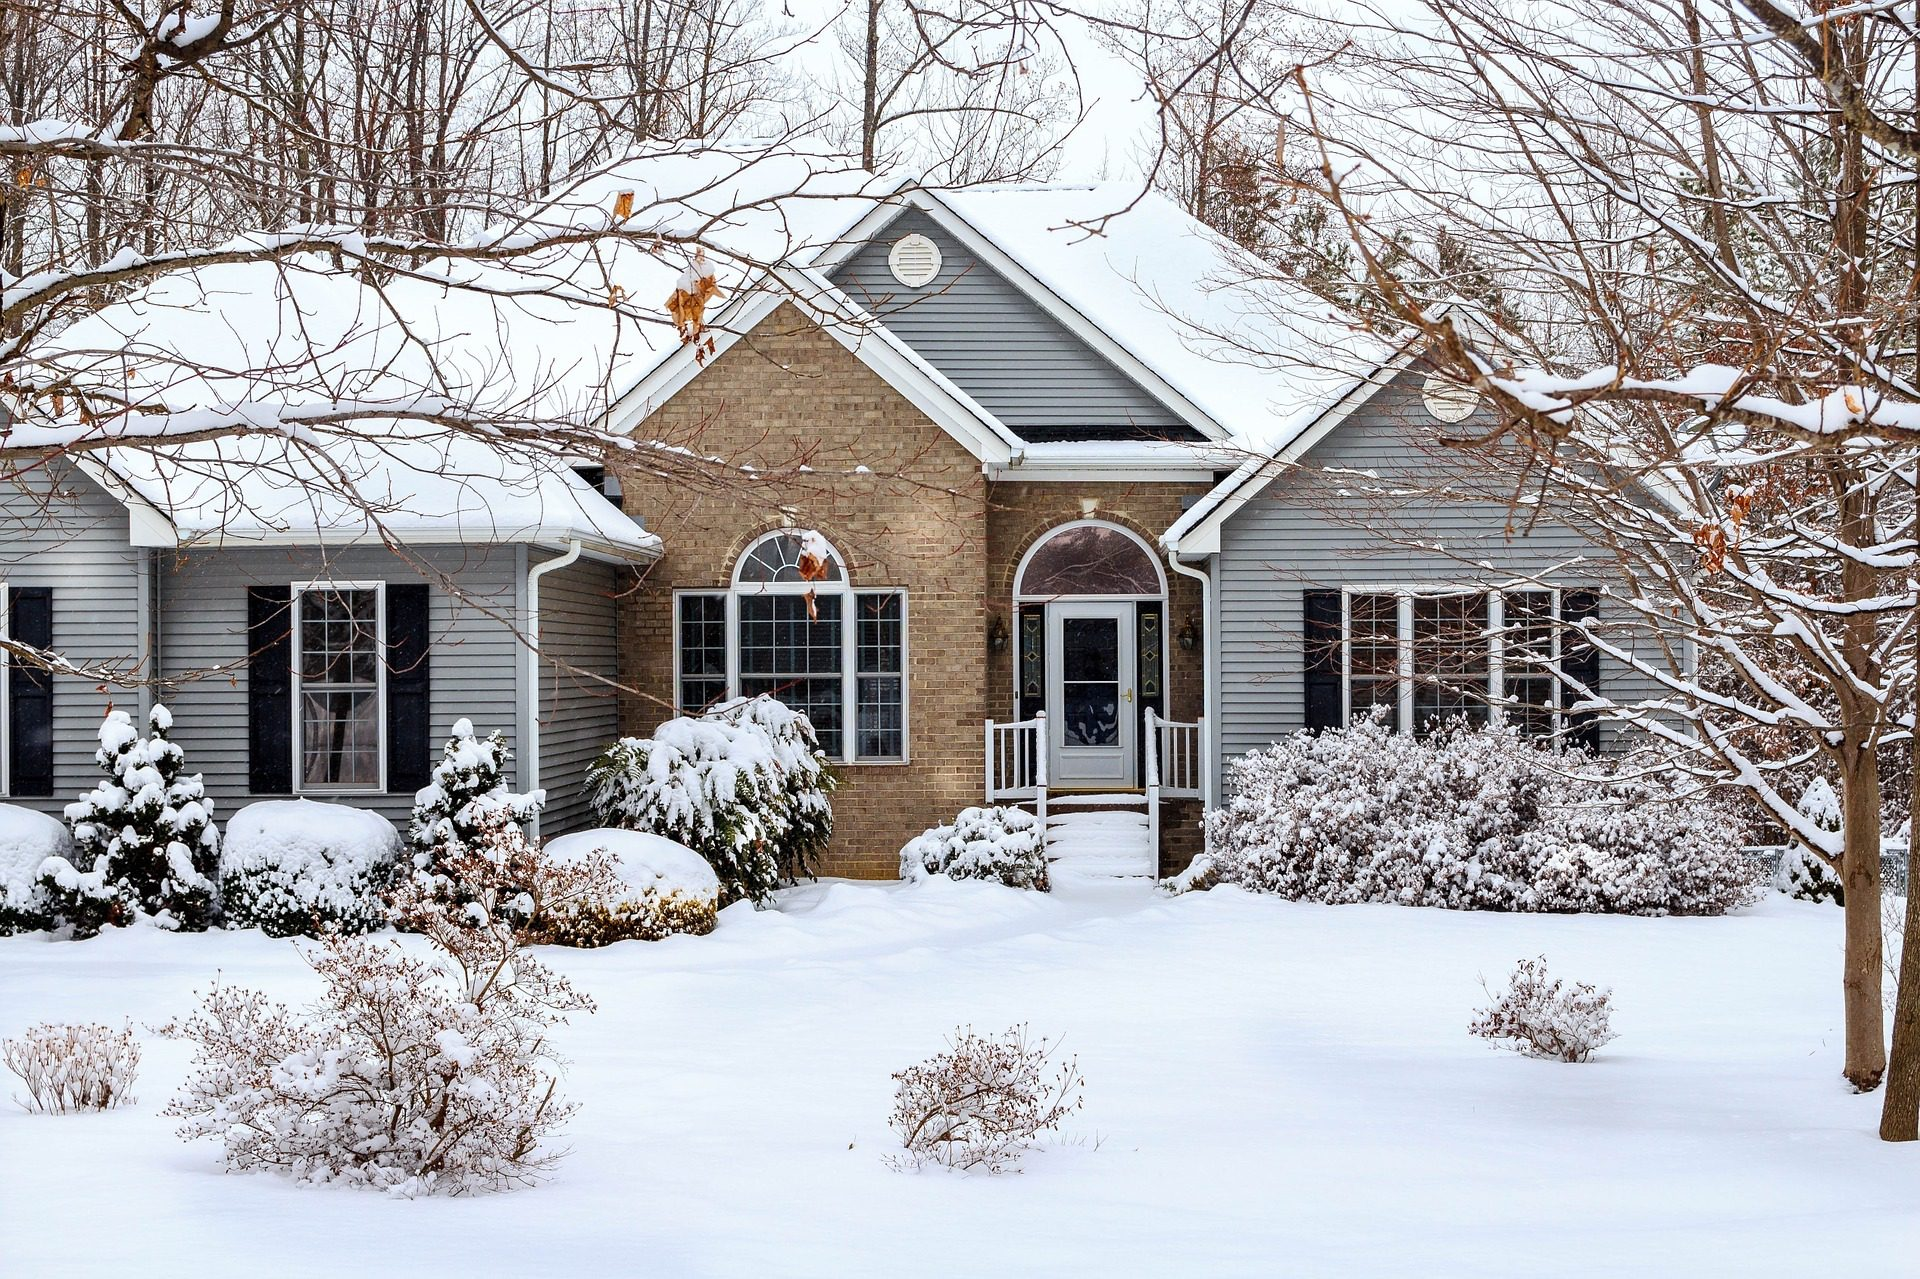 Tips for Preparing Your Home and Yourself for Winter